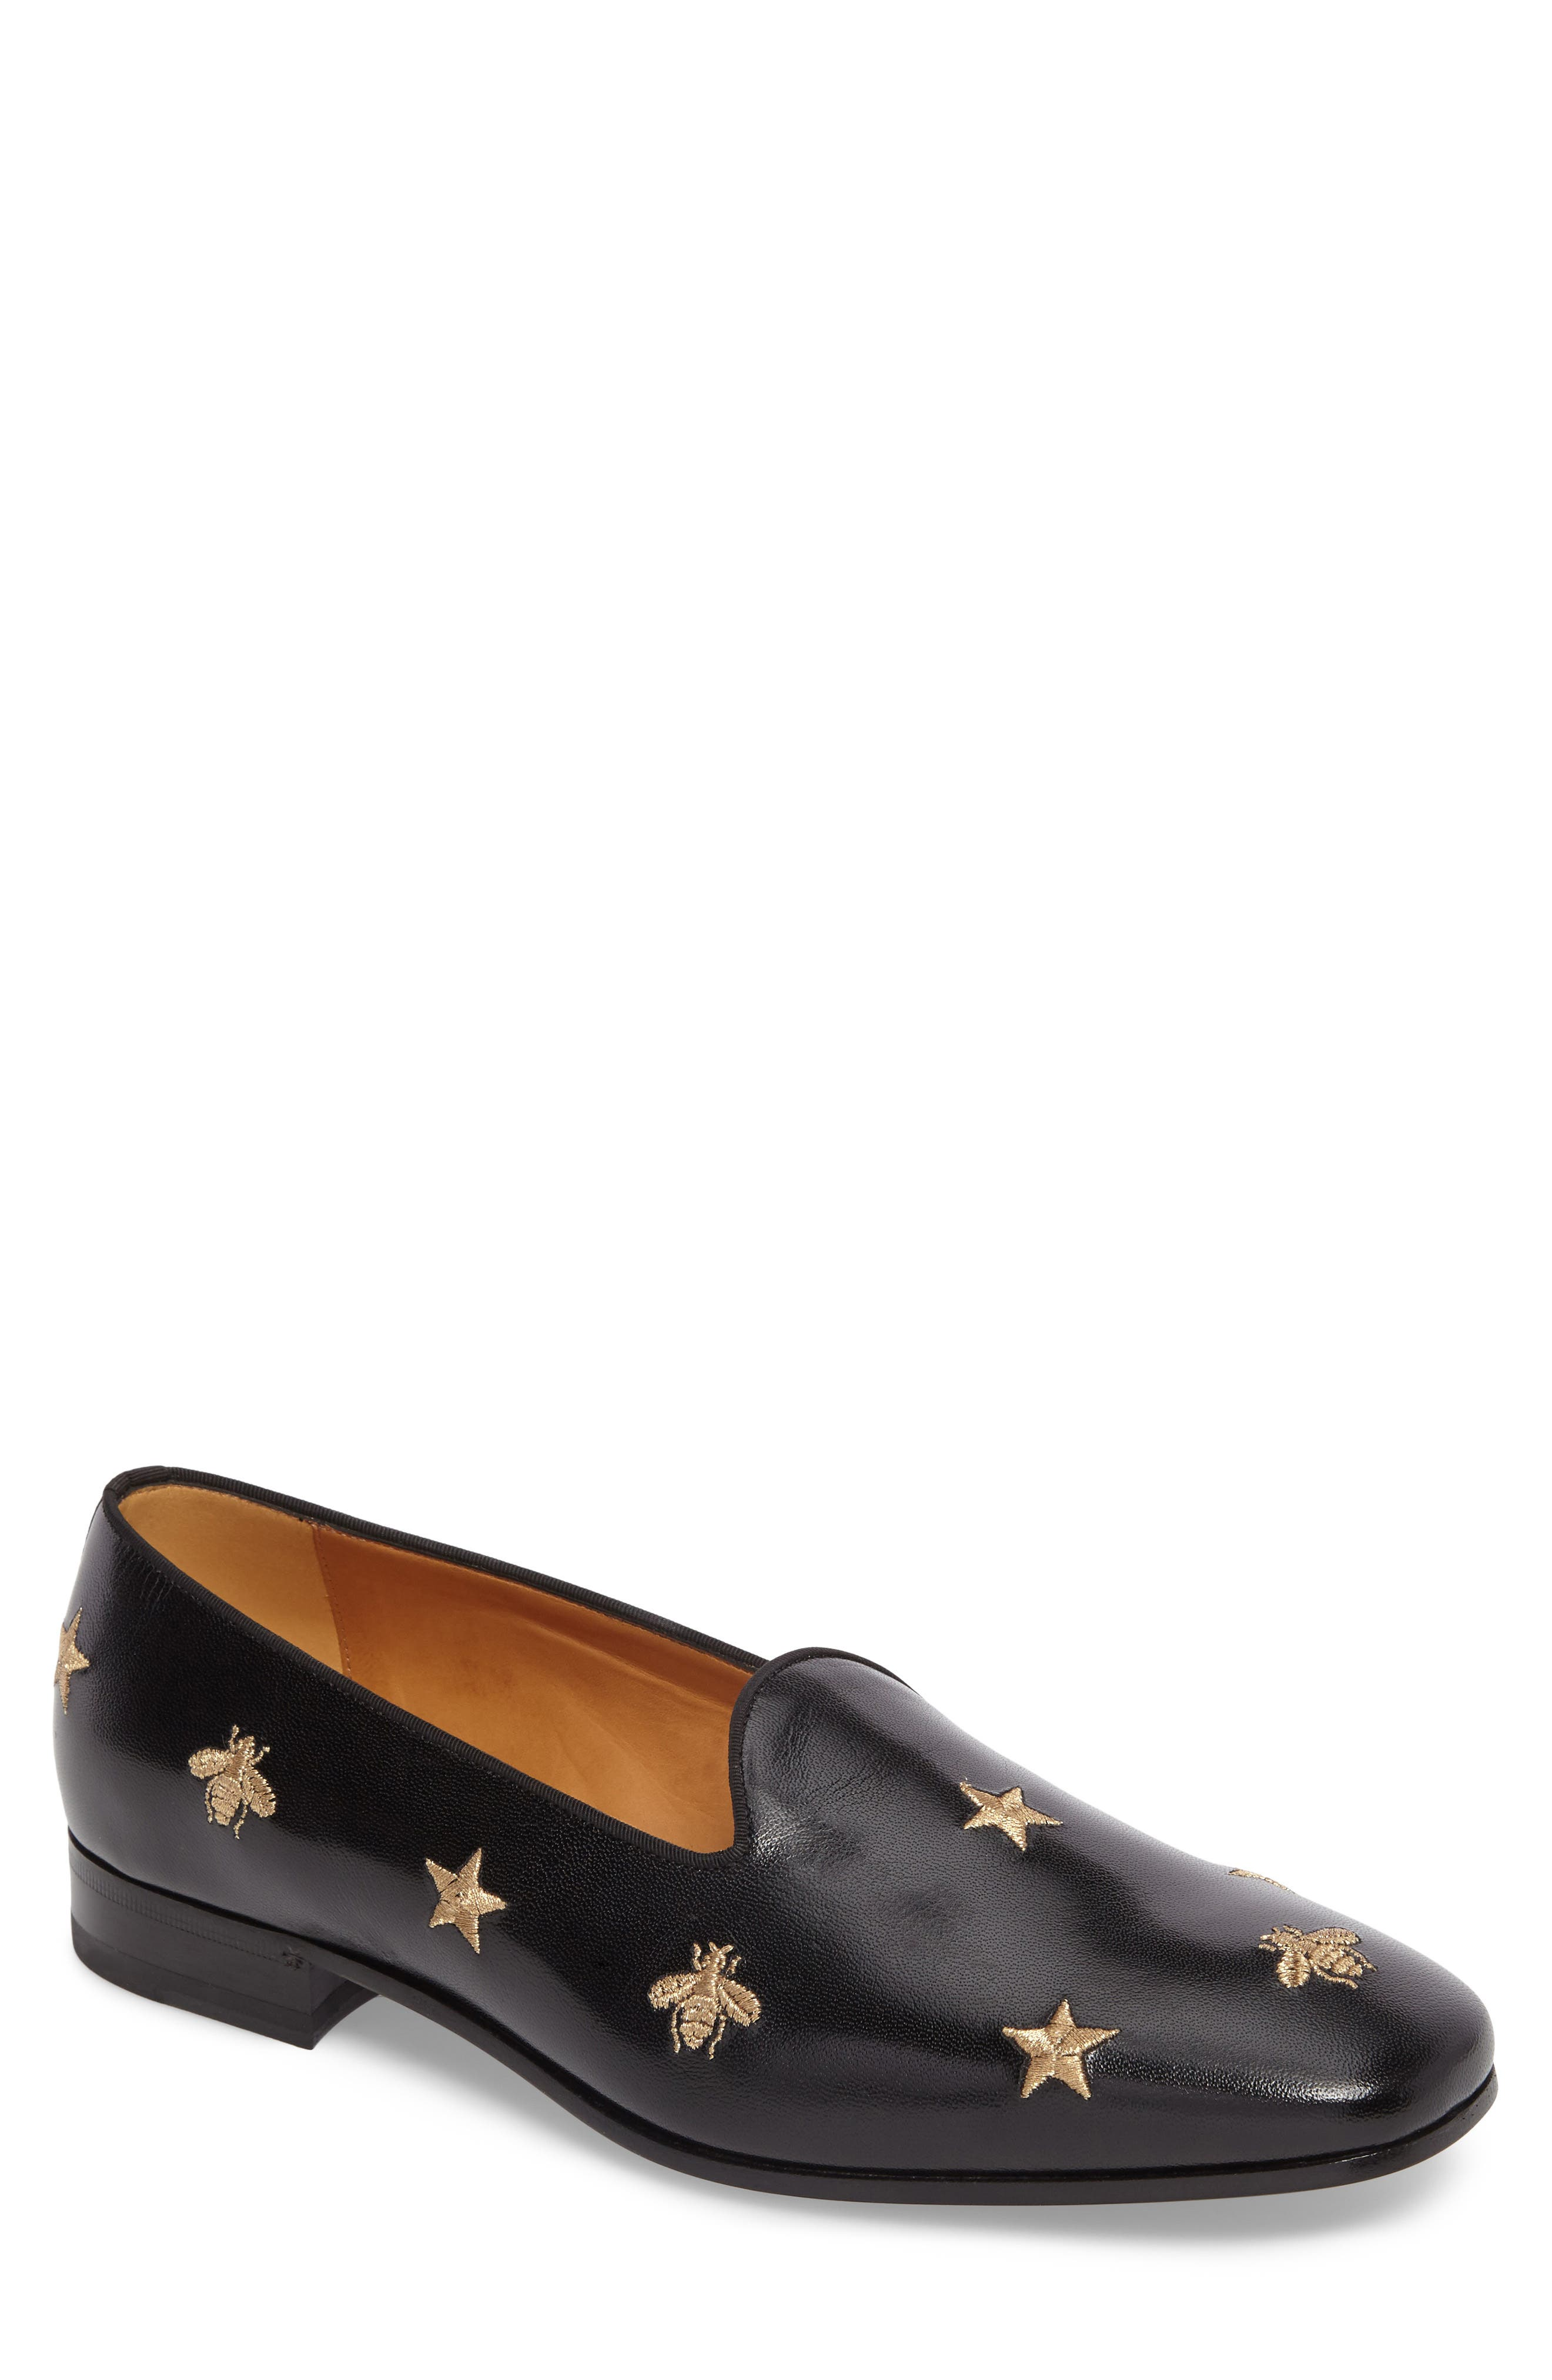 New Gallipoli Star Bee Loafer by Gucci